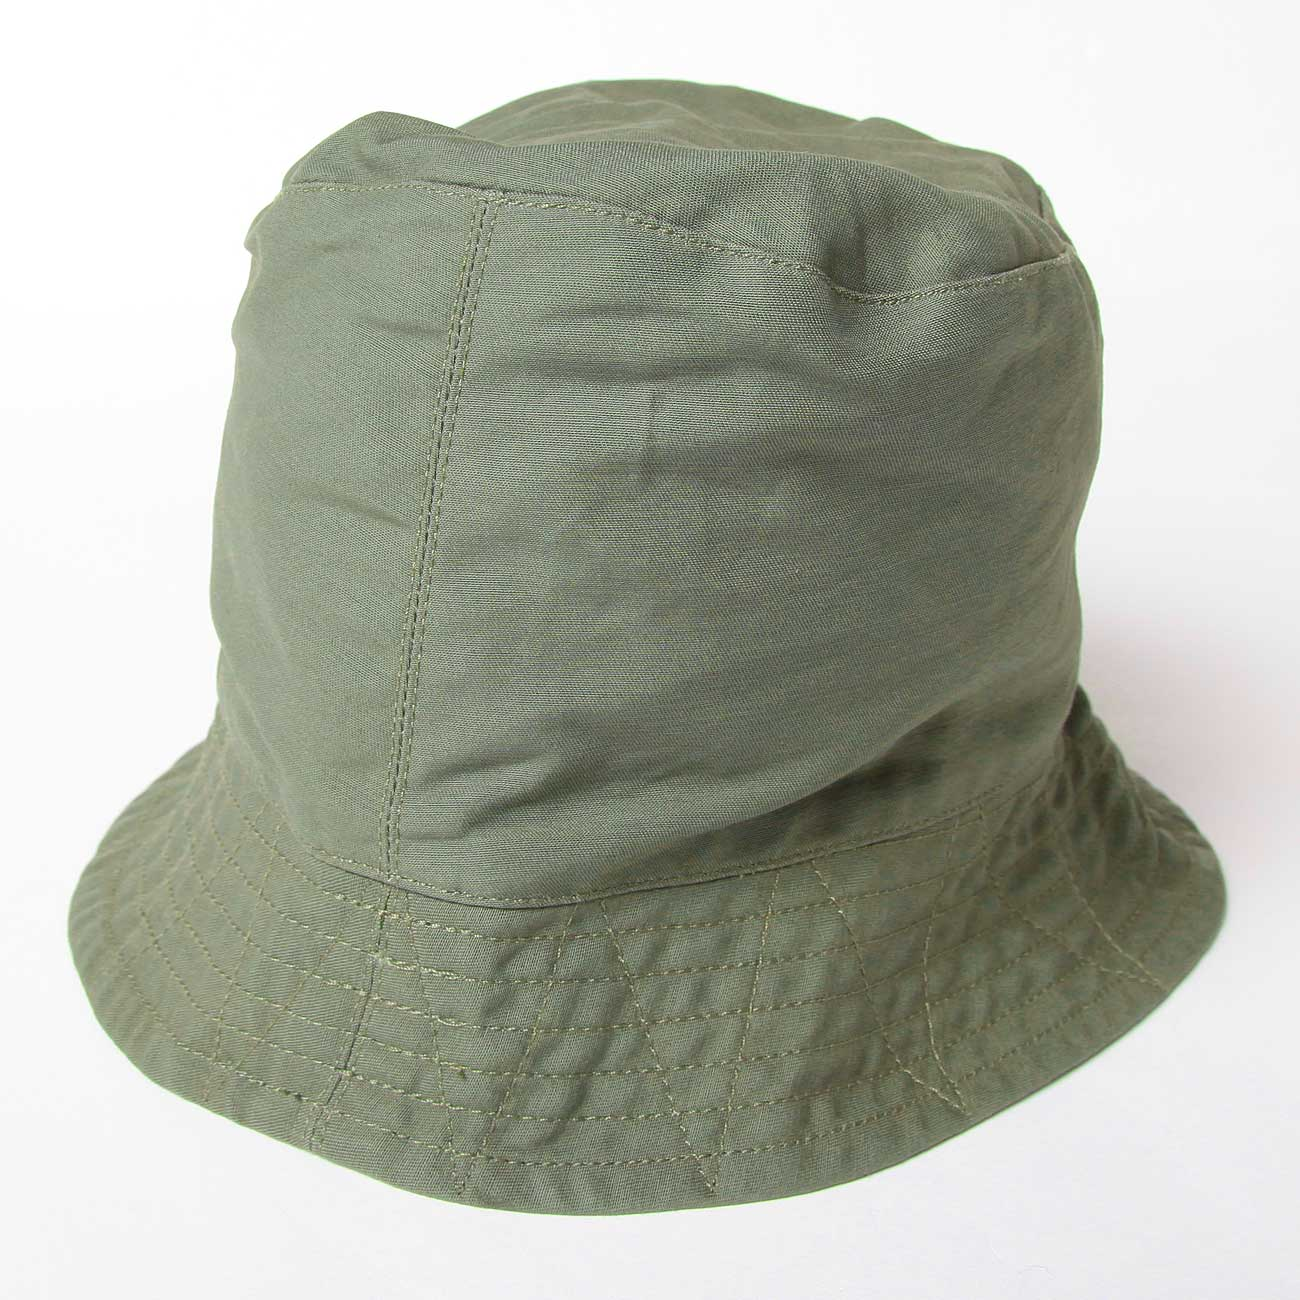 6fe26ddf20c HOME   ENGINEERED GARMENTS   キャップ・ハット   Bucket Hat - Cotton Double Cloth -  Olive. Previous Next